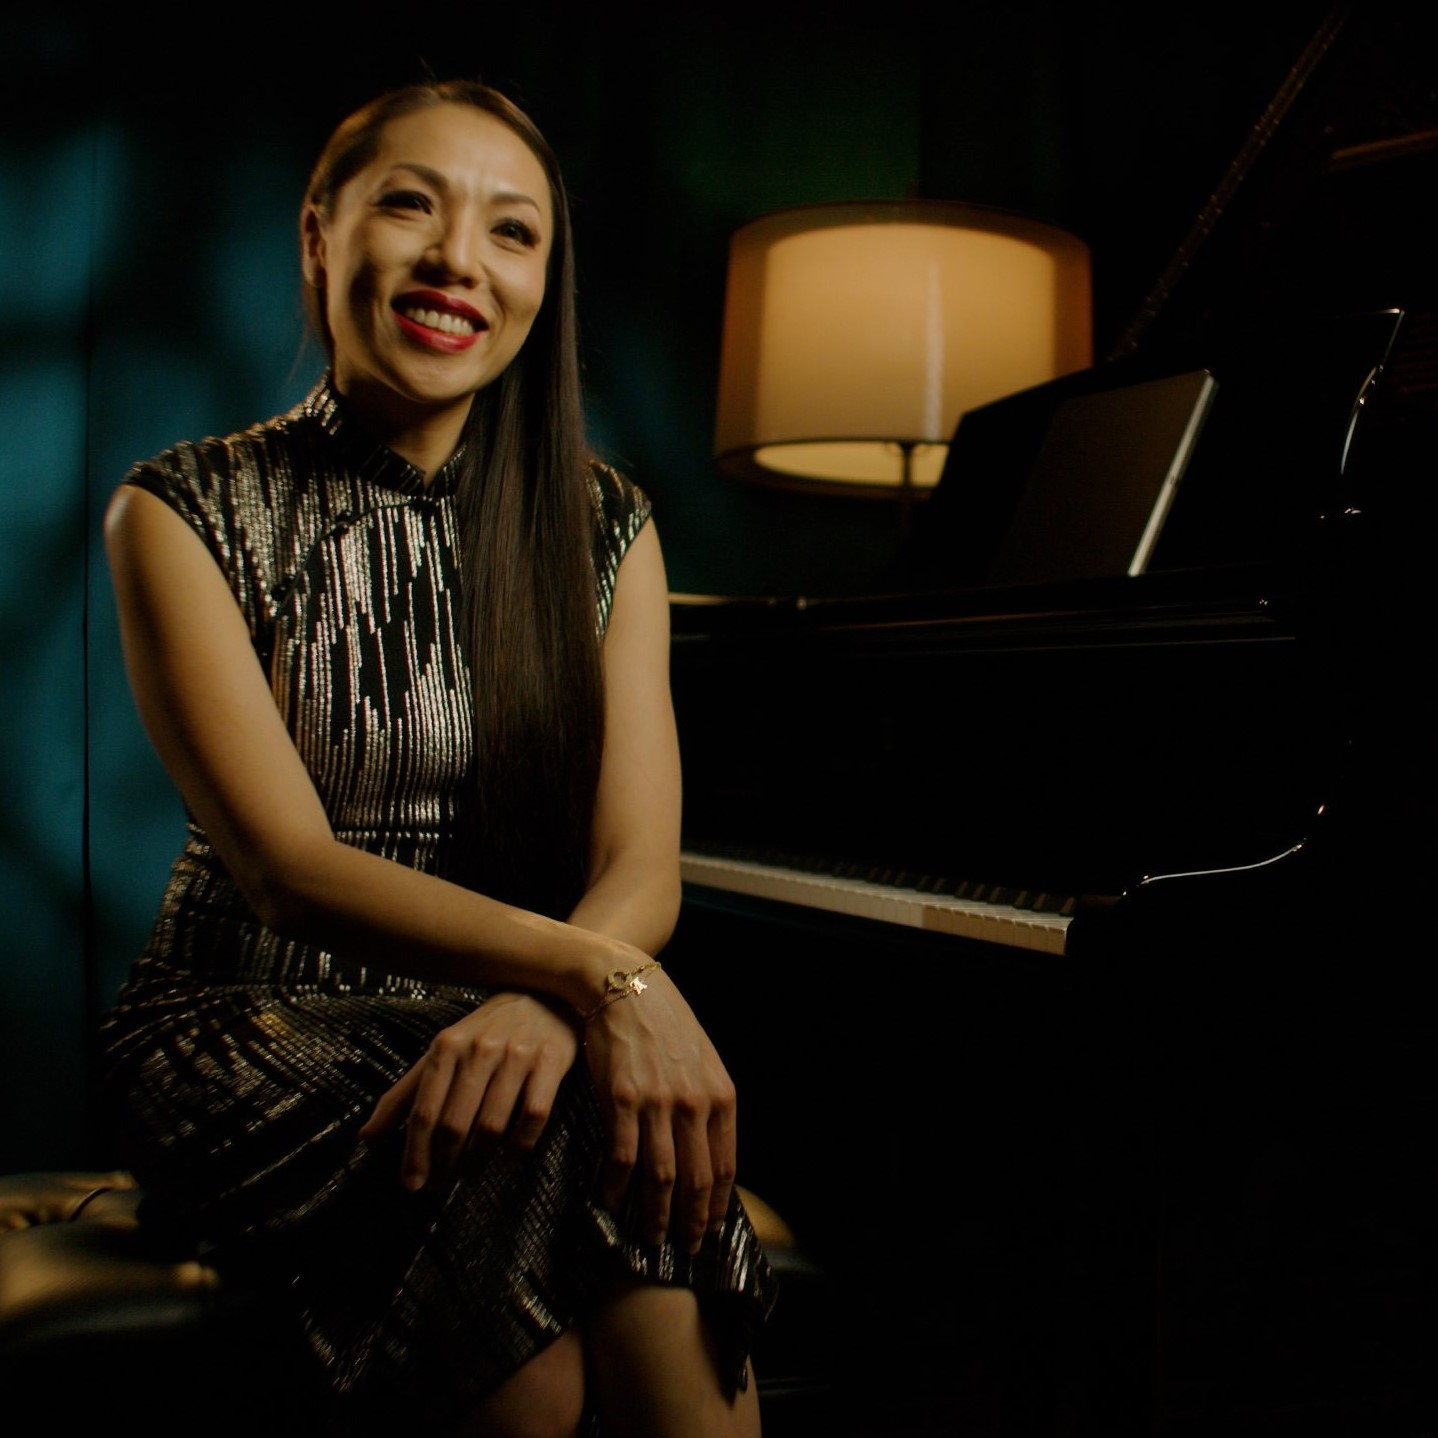 https://www.steinway-gallery.com.sg/wp-content/uploads/Nellie_Hires-square.jpg